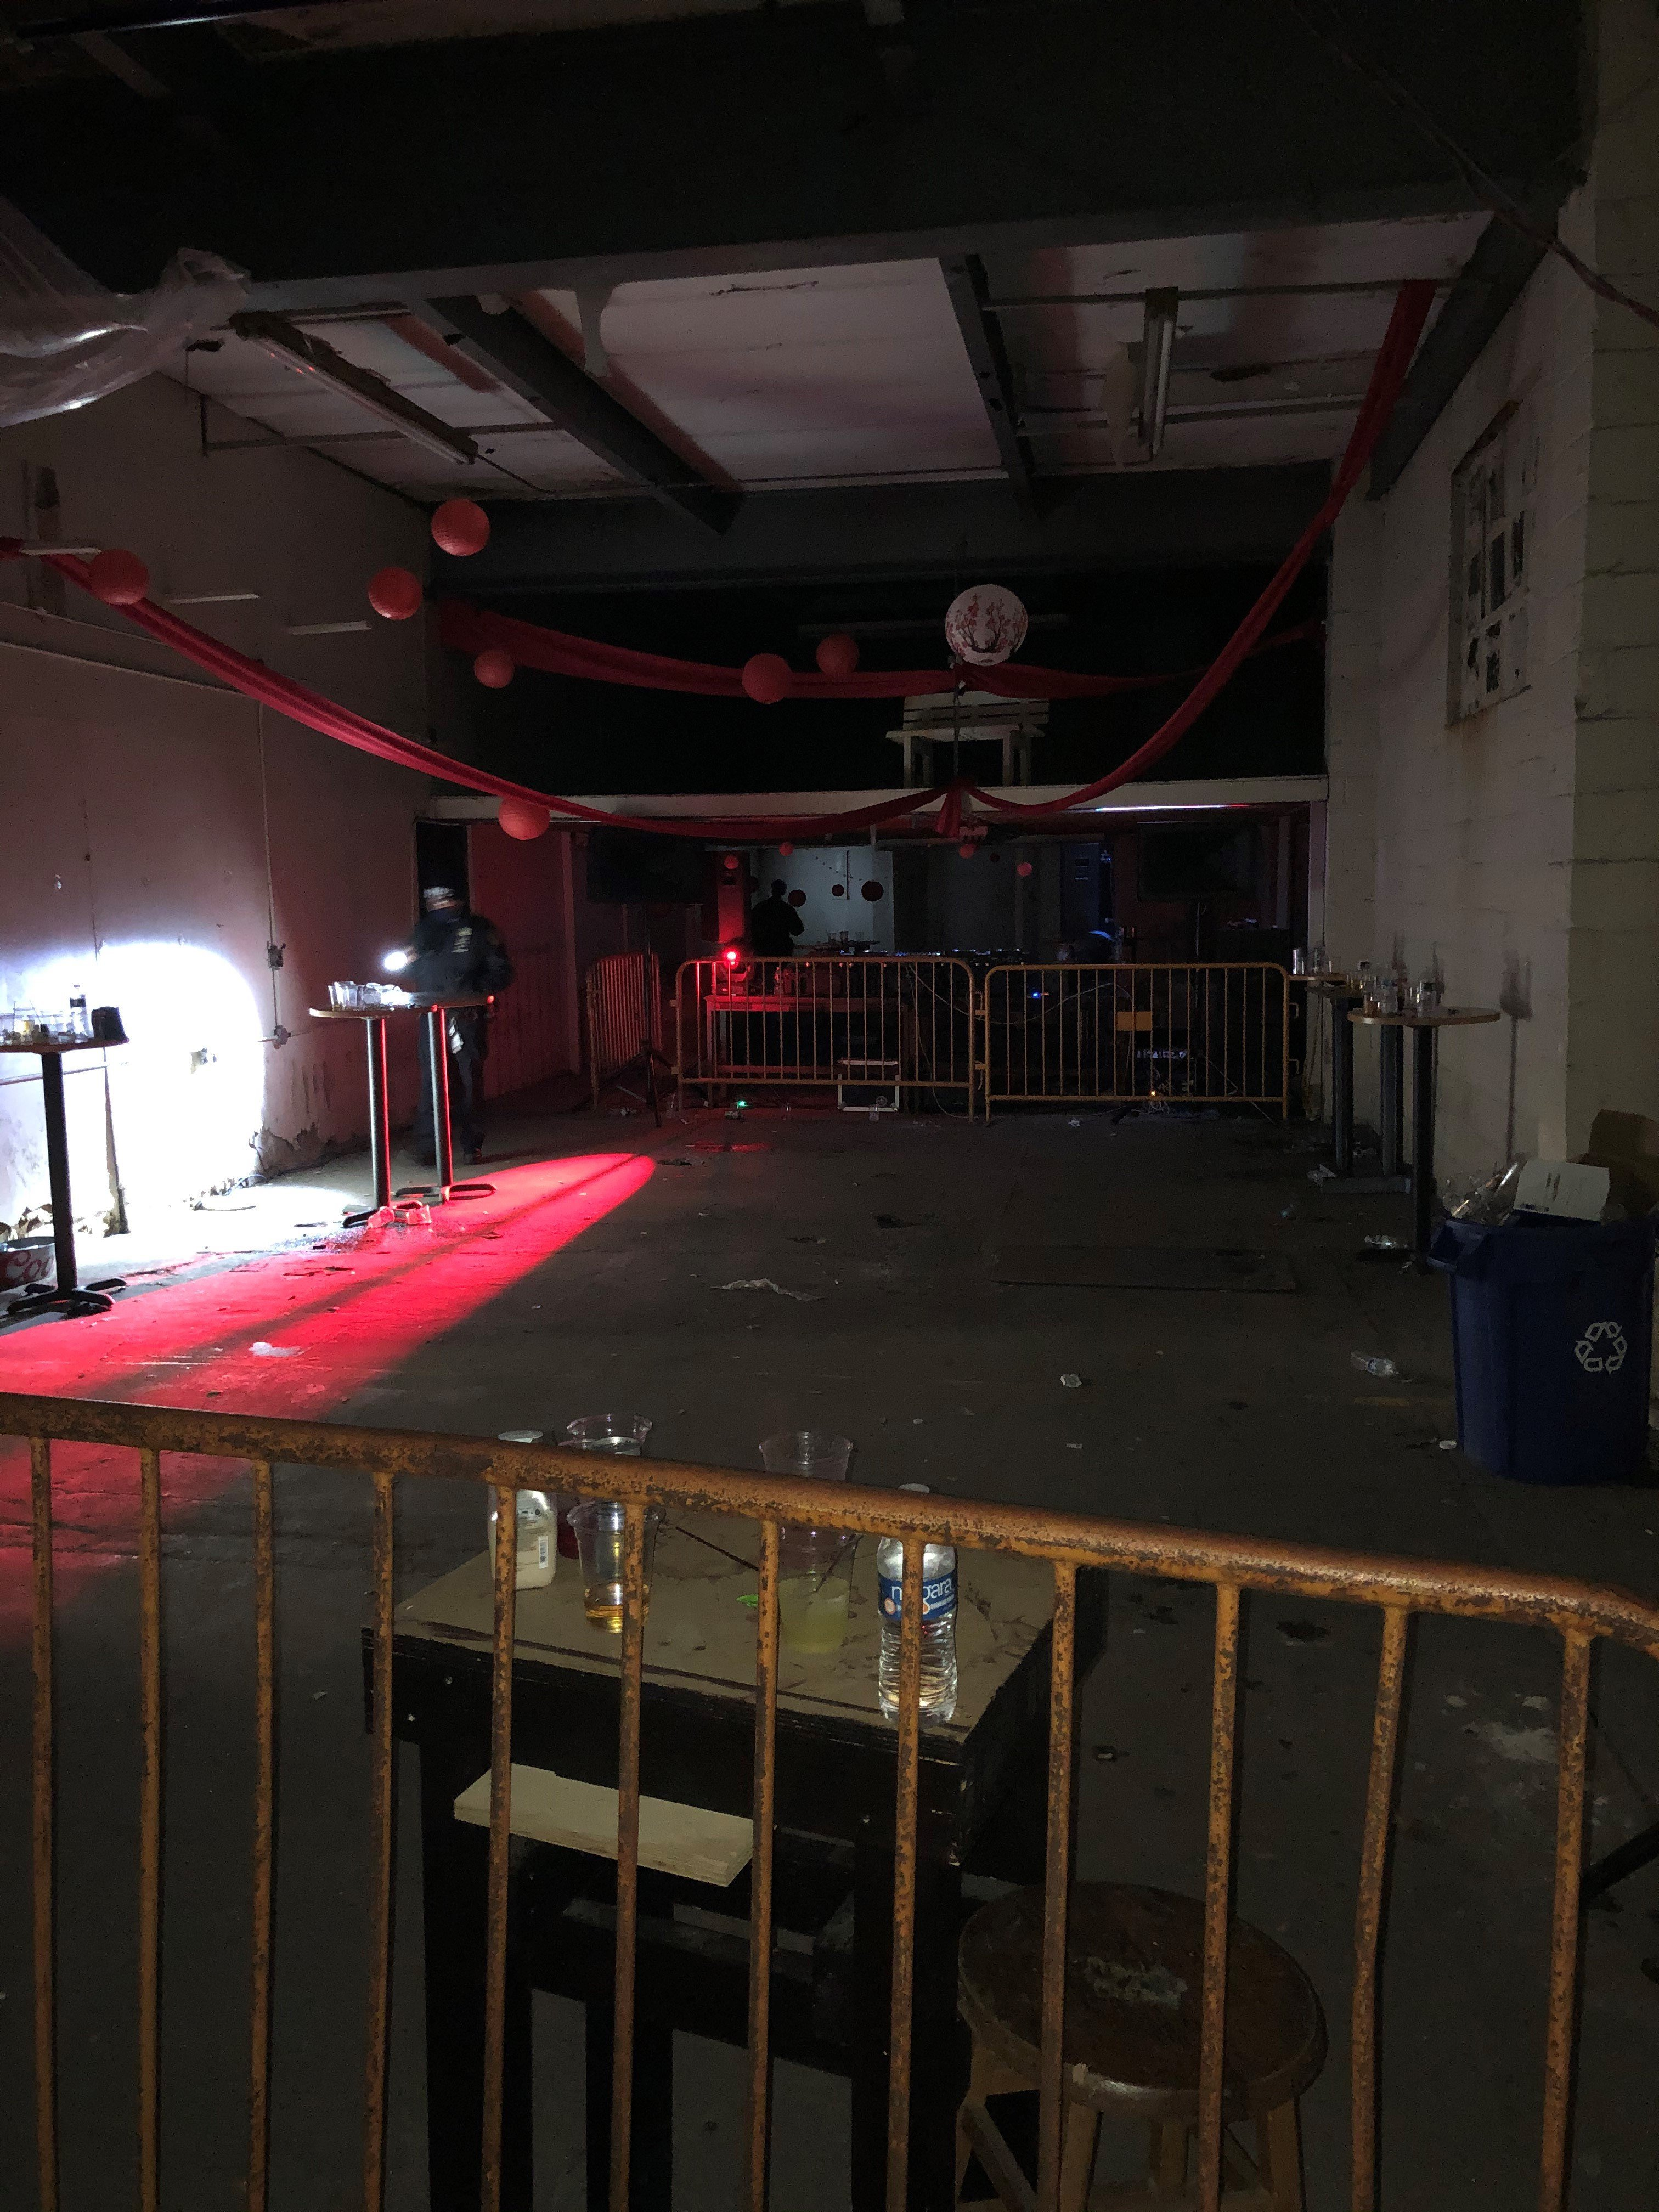 NYC deputies shut down an unlicensed warehouse club with more than 100 partygoers inside